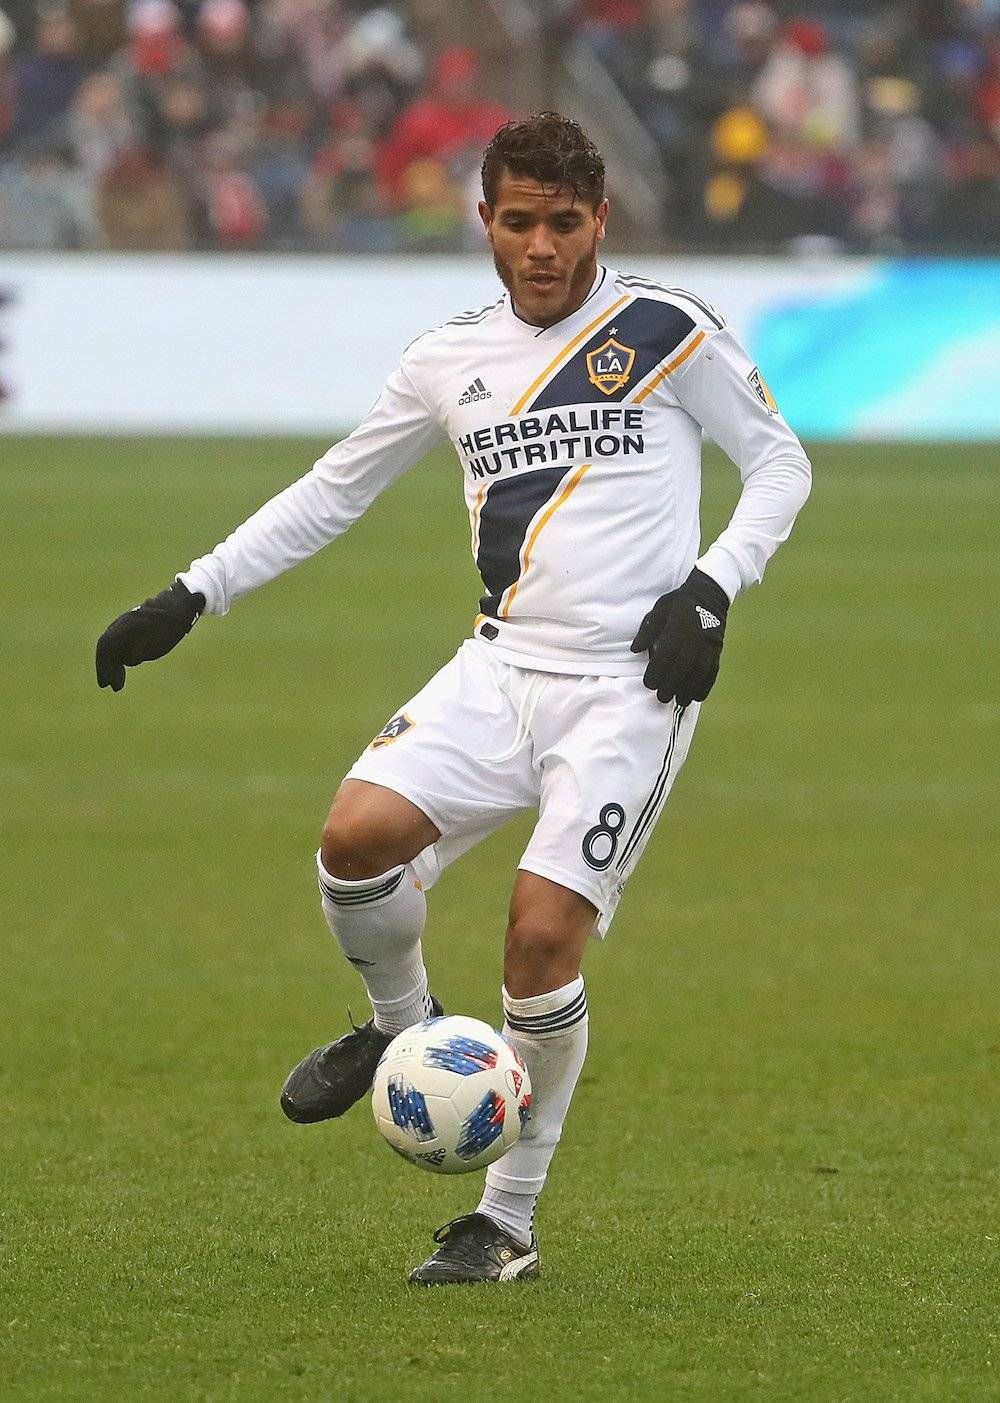 Jonathan dos Santos / Getty Images